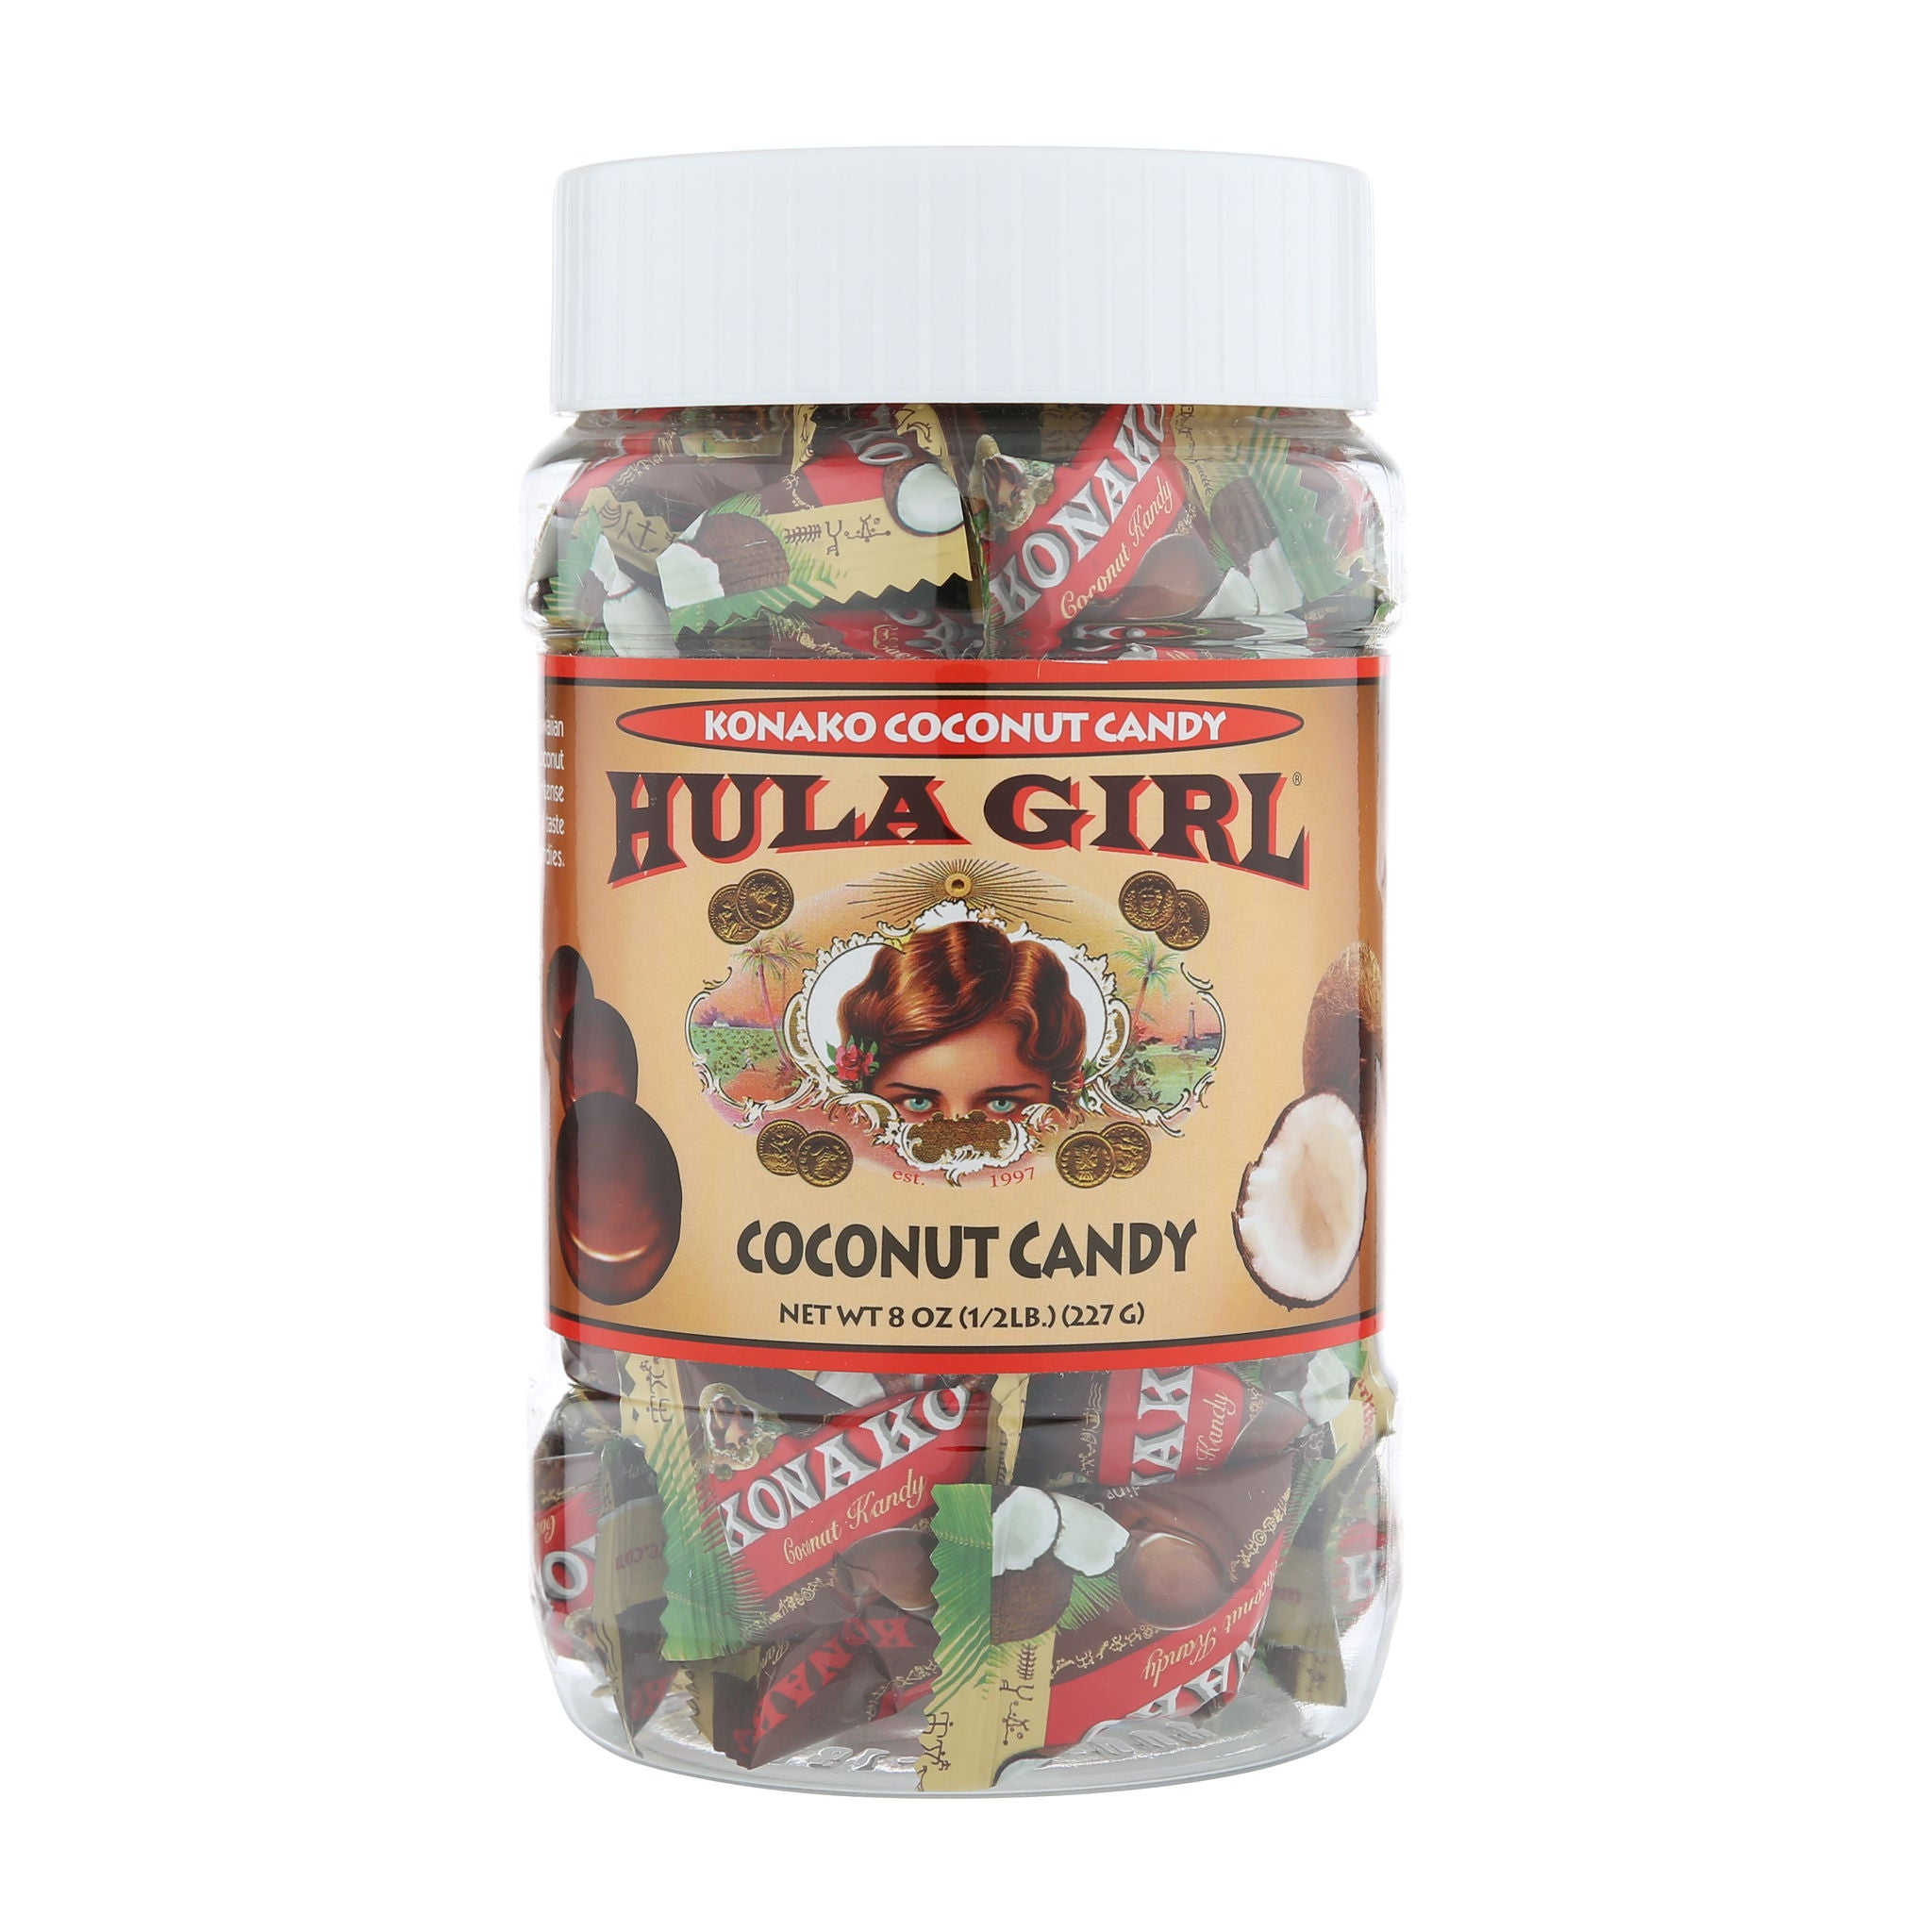 Hula Girl Coconut Candy